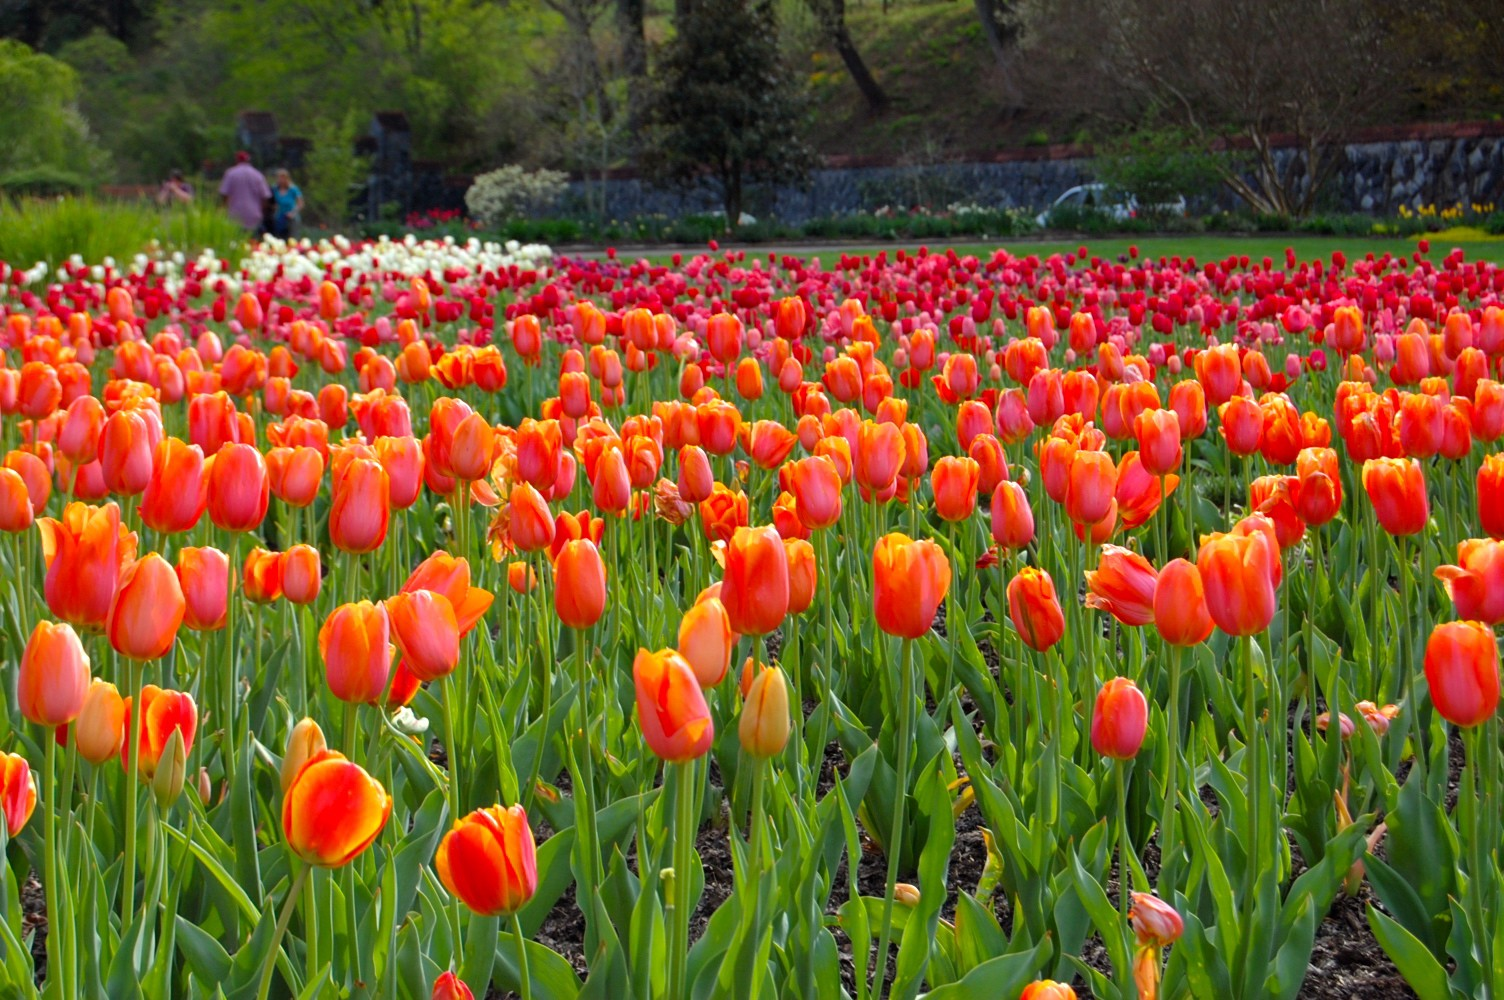 Is Bitcoin the new tulip mania? - Look Ma, I'm Blogging!